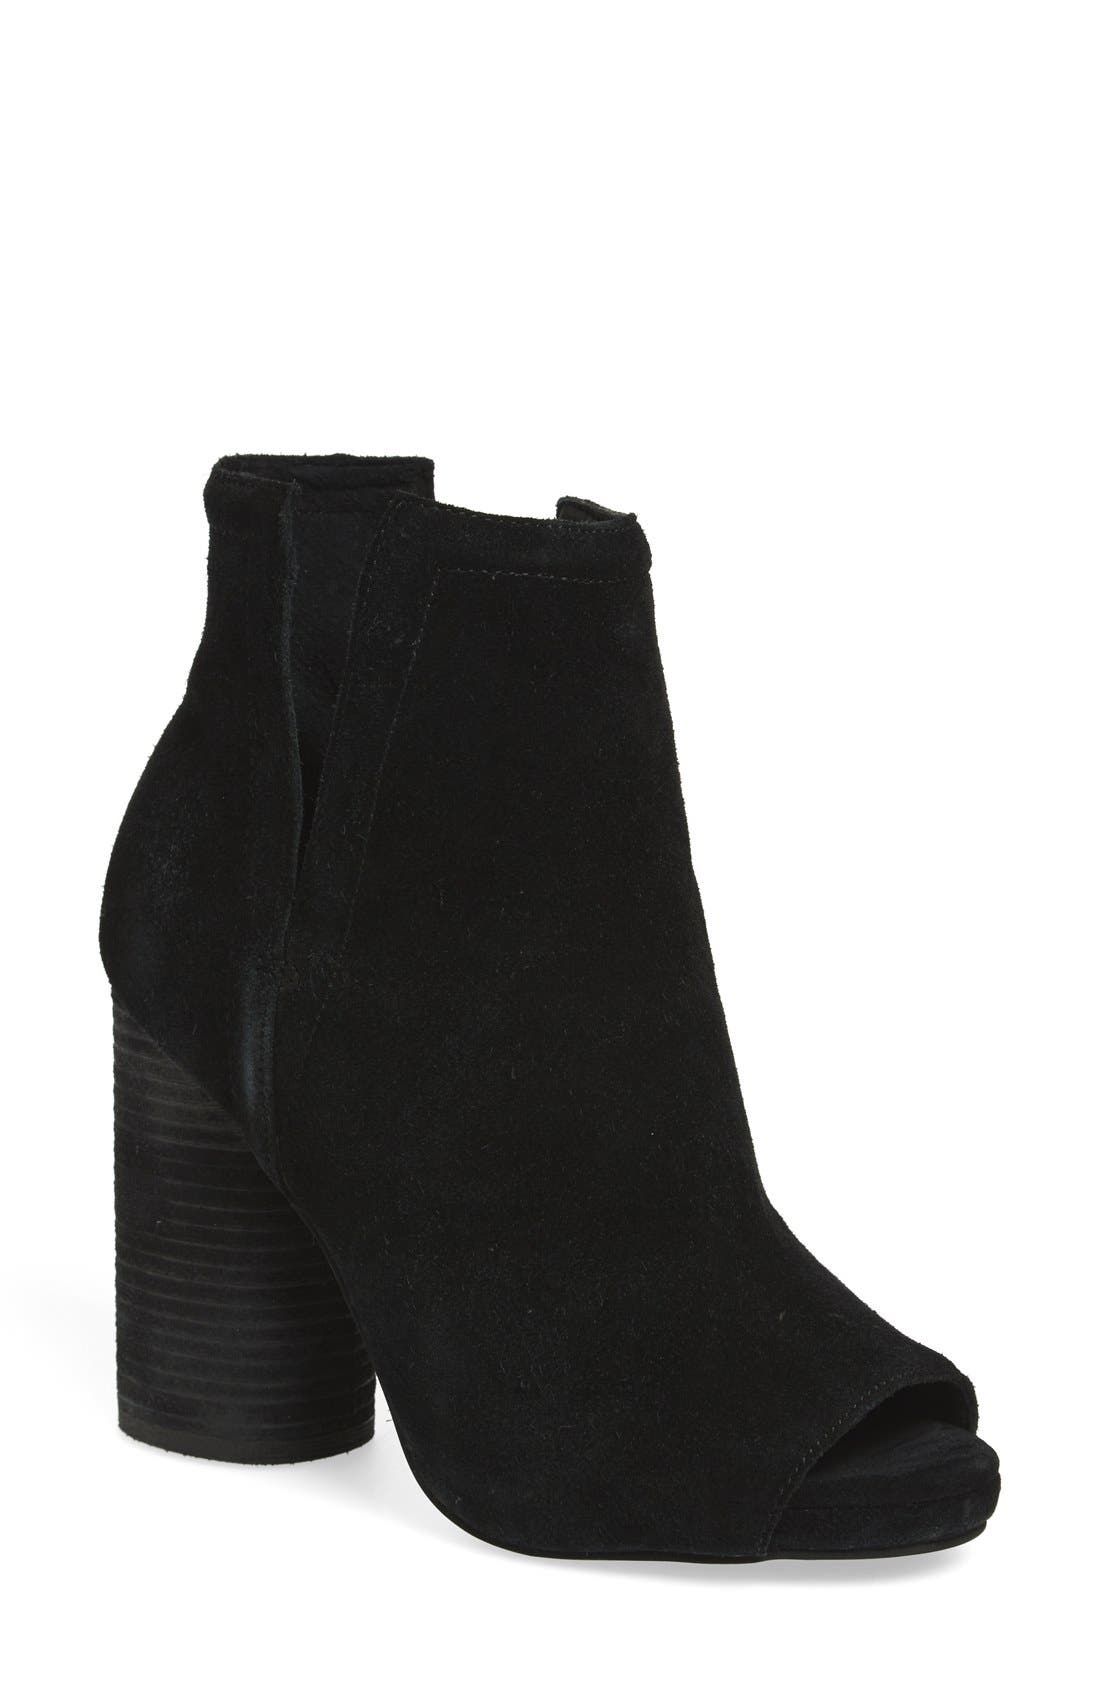 'Oath' Peep Toe Platform Bootie,                             Main thumbnail 1, color,                             Black Oiled Suede